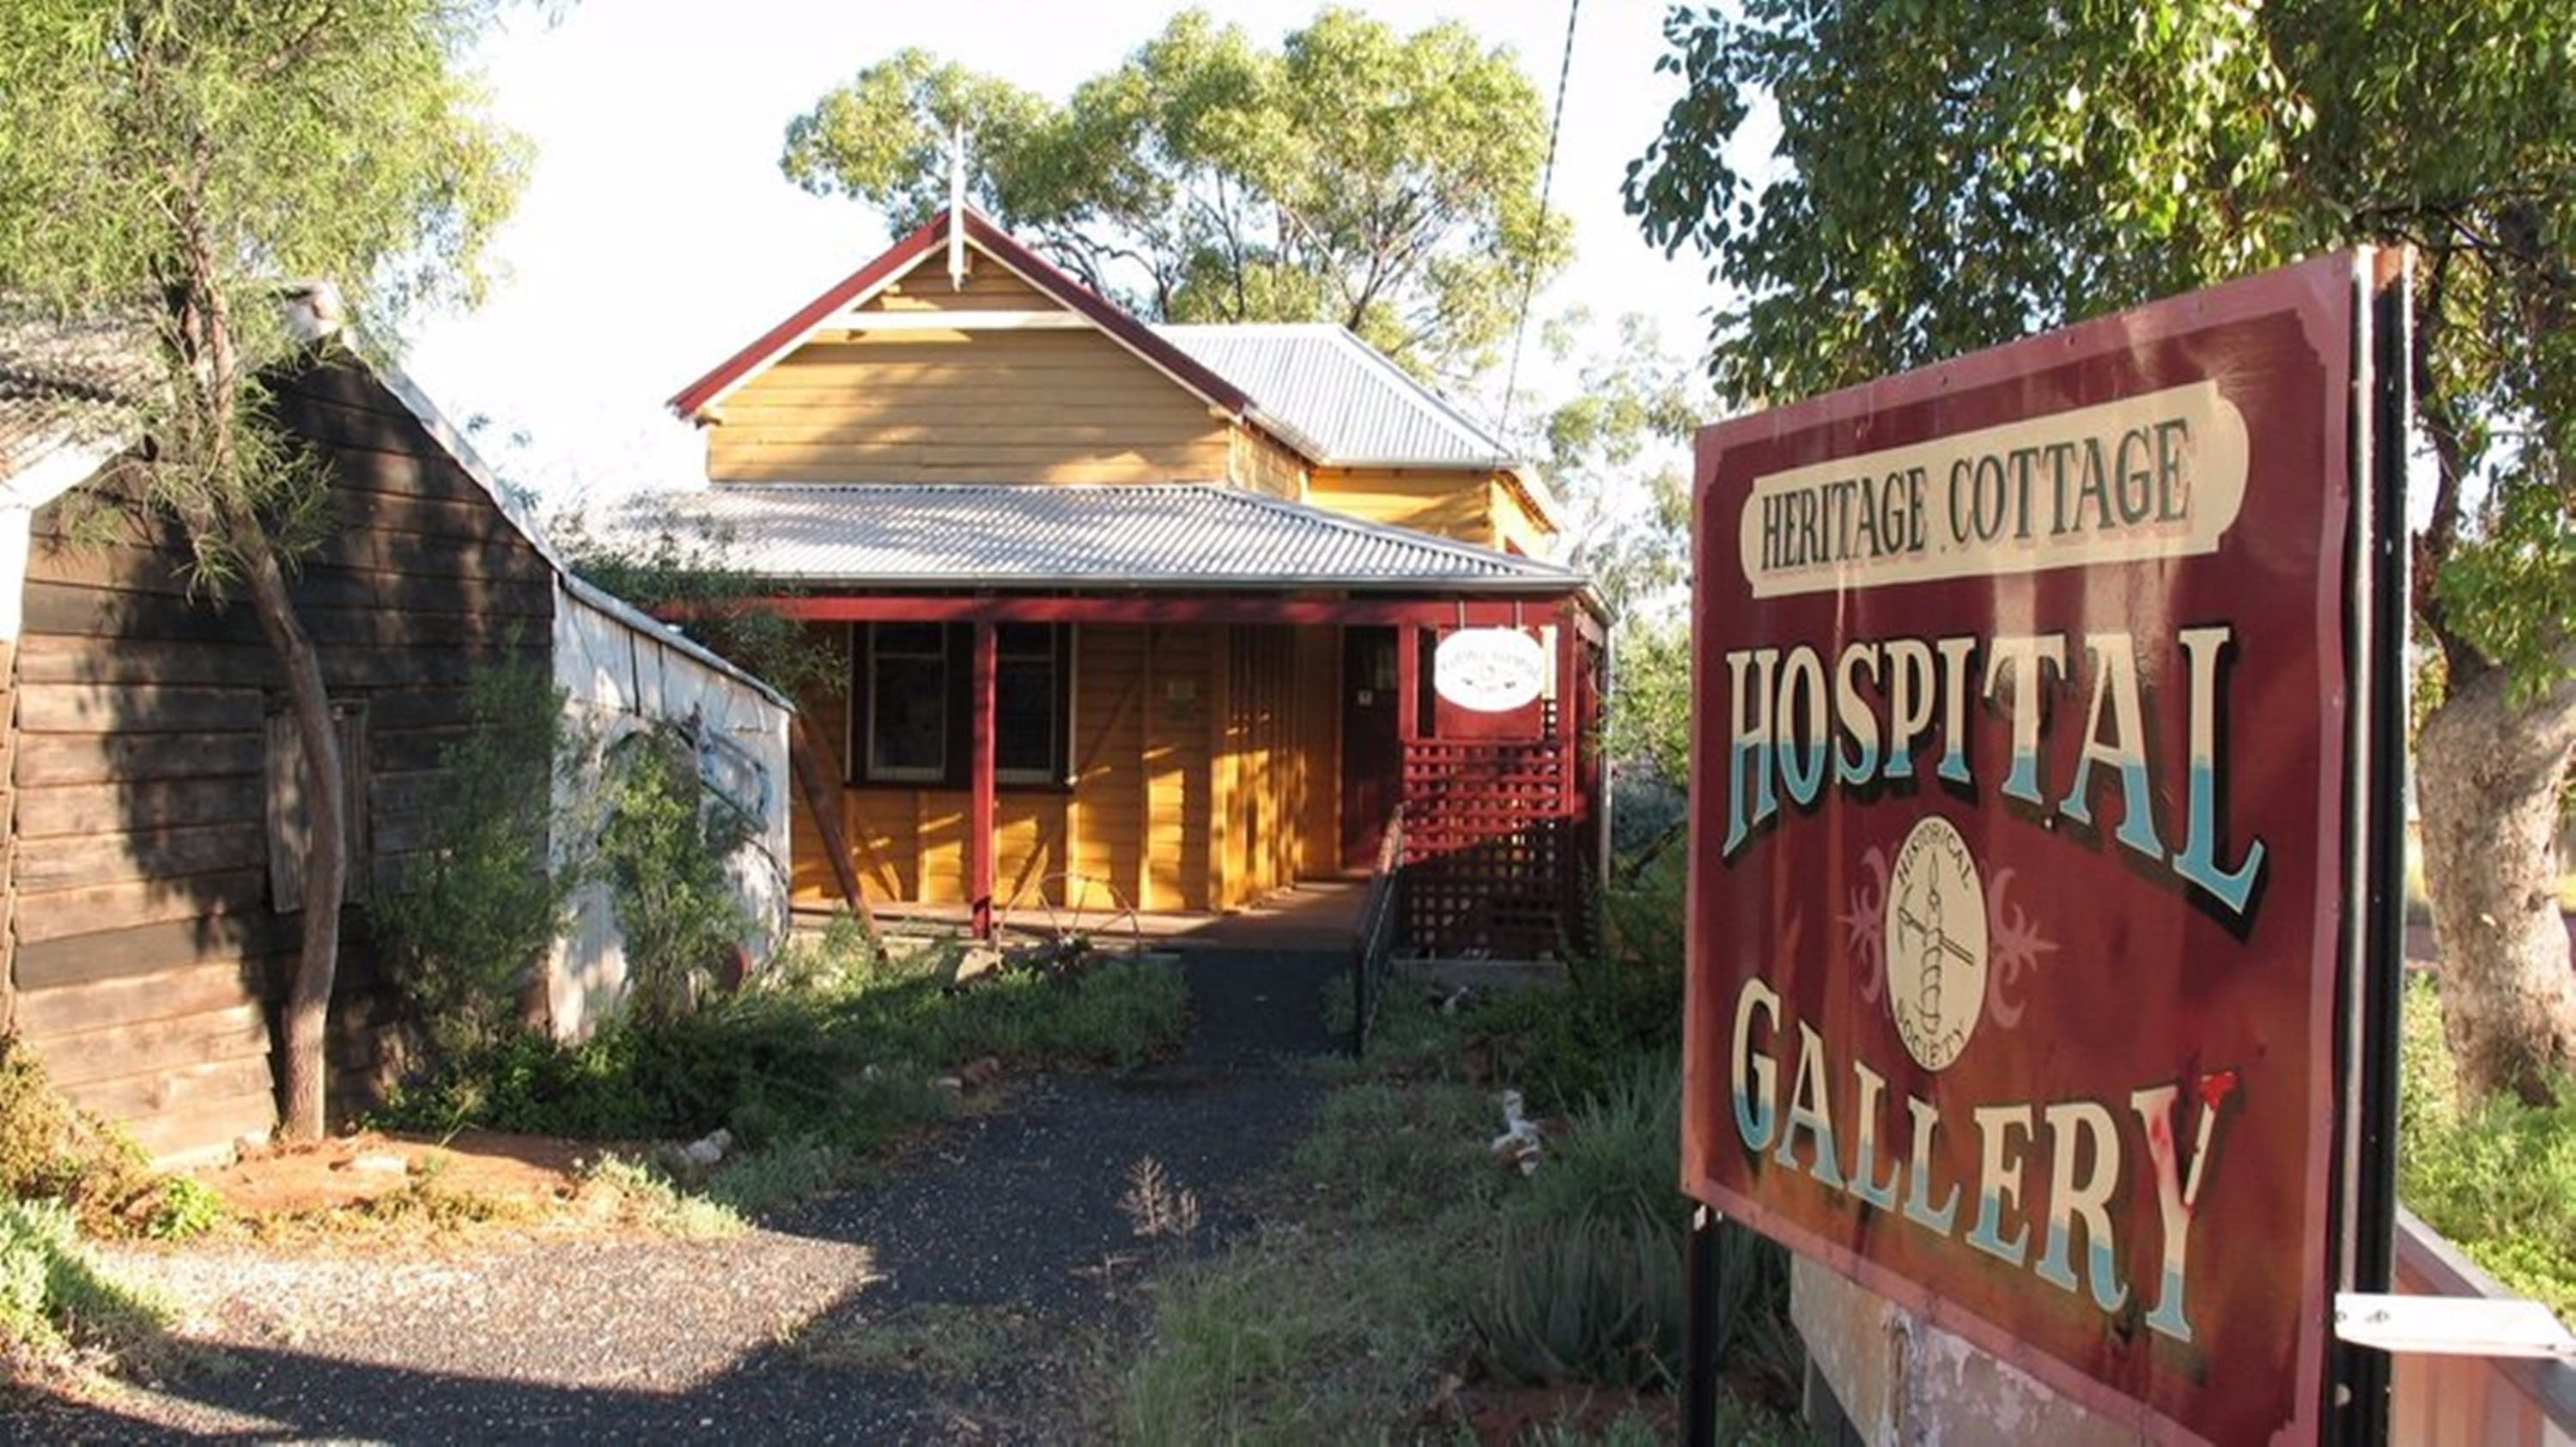 Lightning Ridge Heritage Cottage - Find Attractions